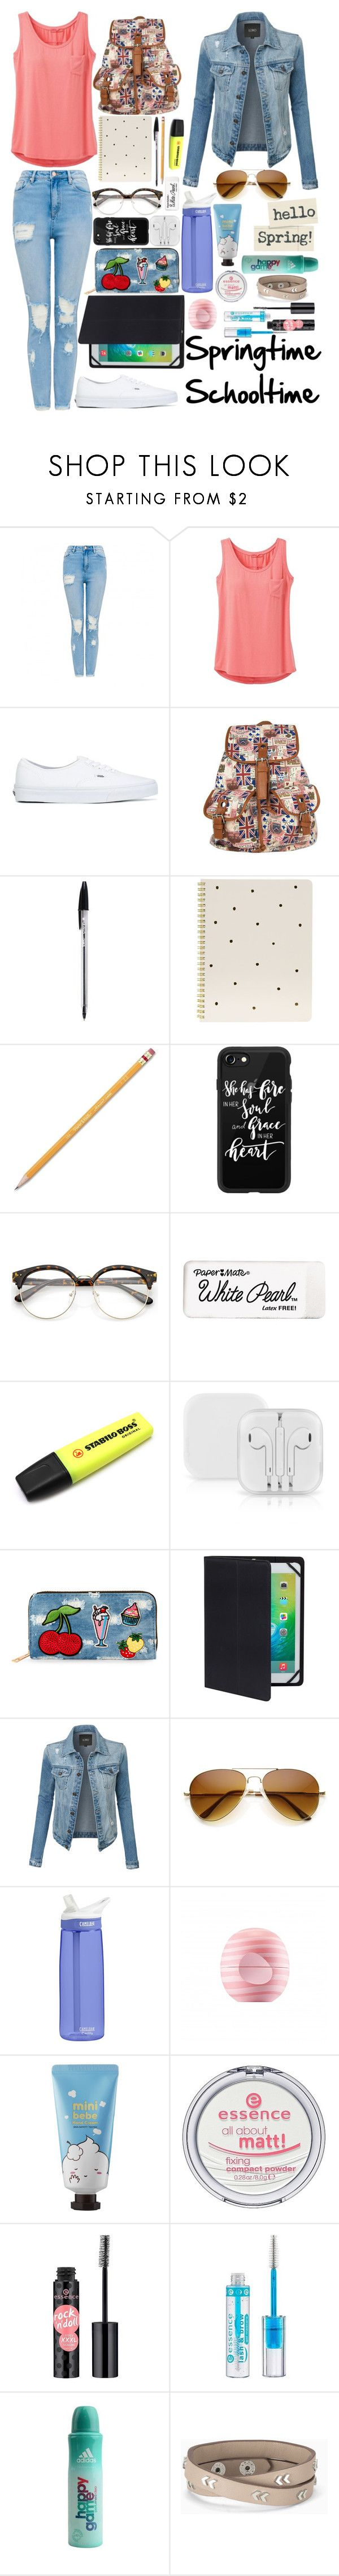 """""""Schooltime, Springtime, Citytime..."""" by lexisamskywalker on Polyvore featuring prAna, Vans, Sugar Paper, Paper Mate, Casetify, Stabilo, Viola, iHome, LE3NO and CamelBak"""